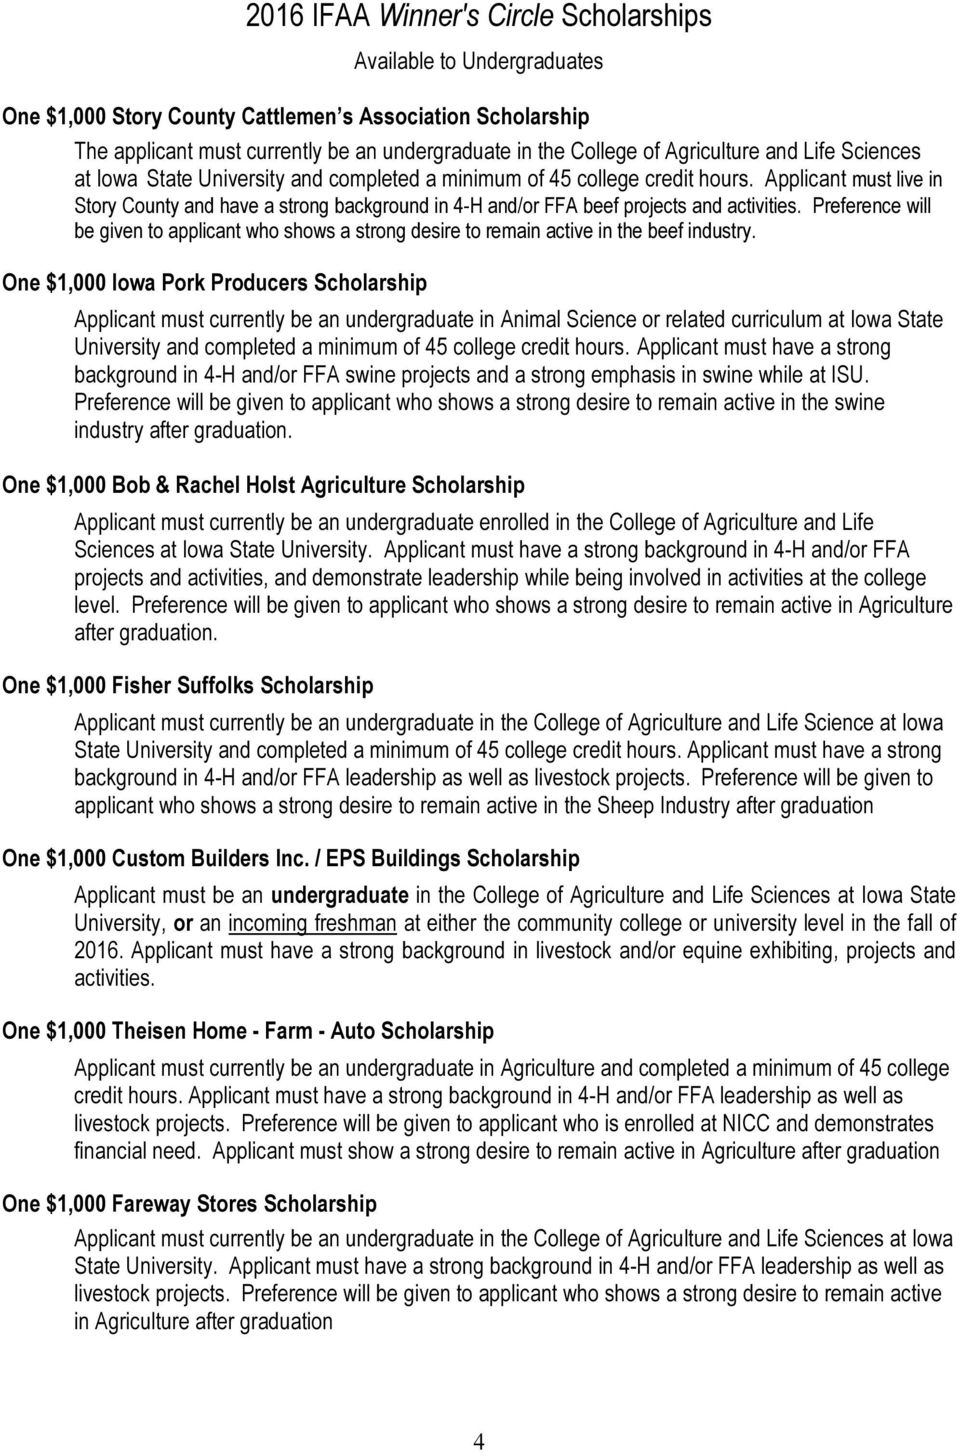 One $1,000 Iowa Pork Producers Scholarship Applicant must currently be an undergraduate in Animal Science or related curriculum at Iowa State University and completed a minimum of 45 college credit